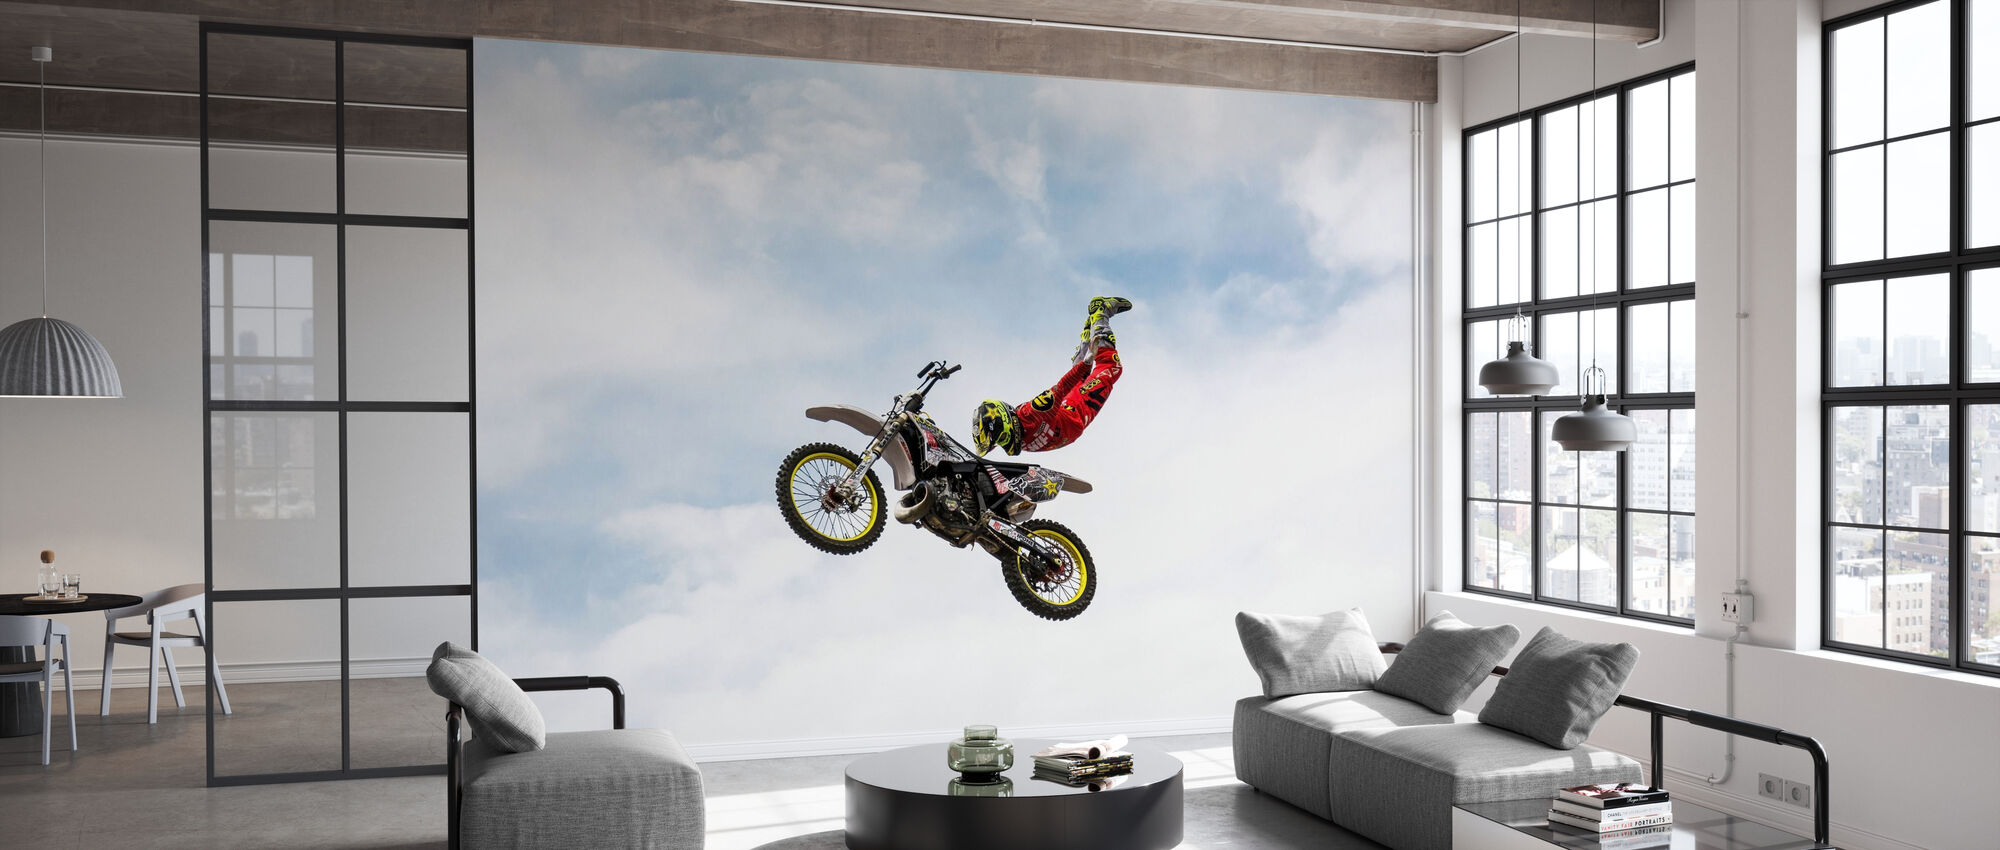 No Hands Superflyer - Wallpaper - Office